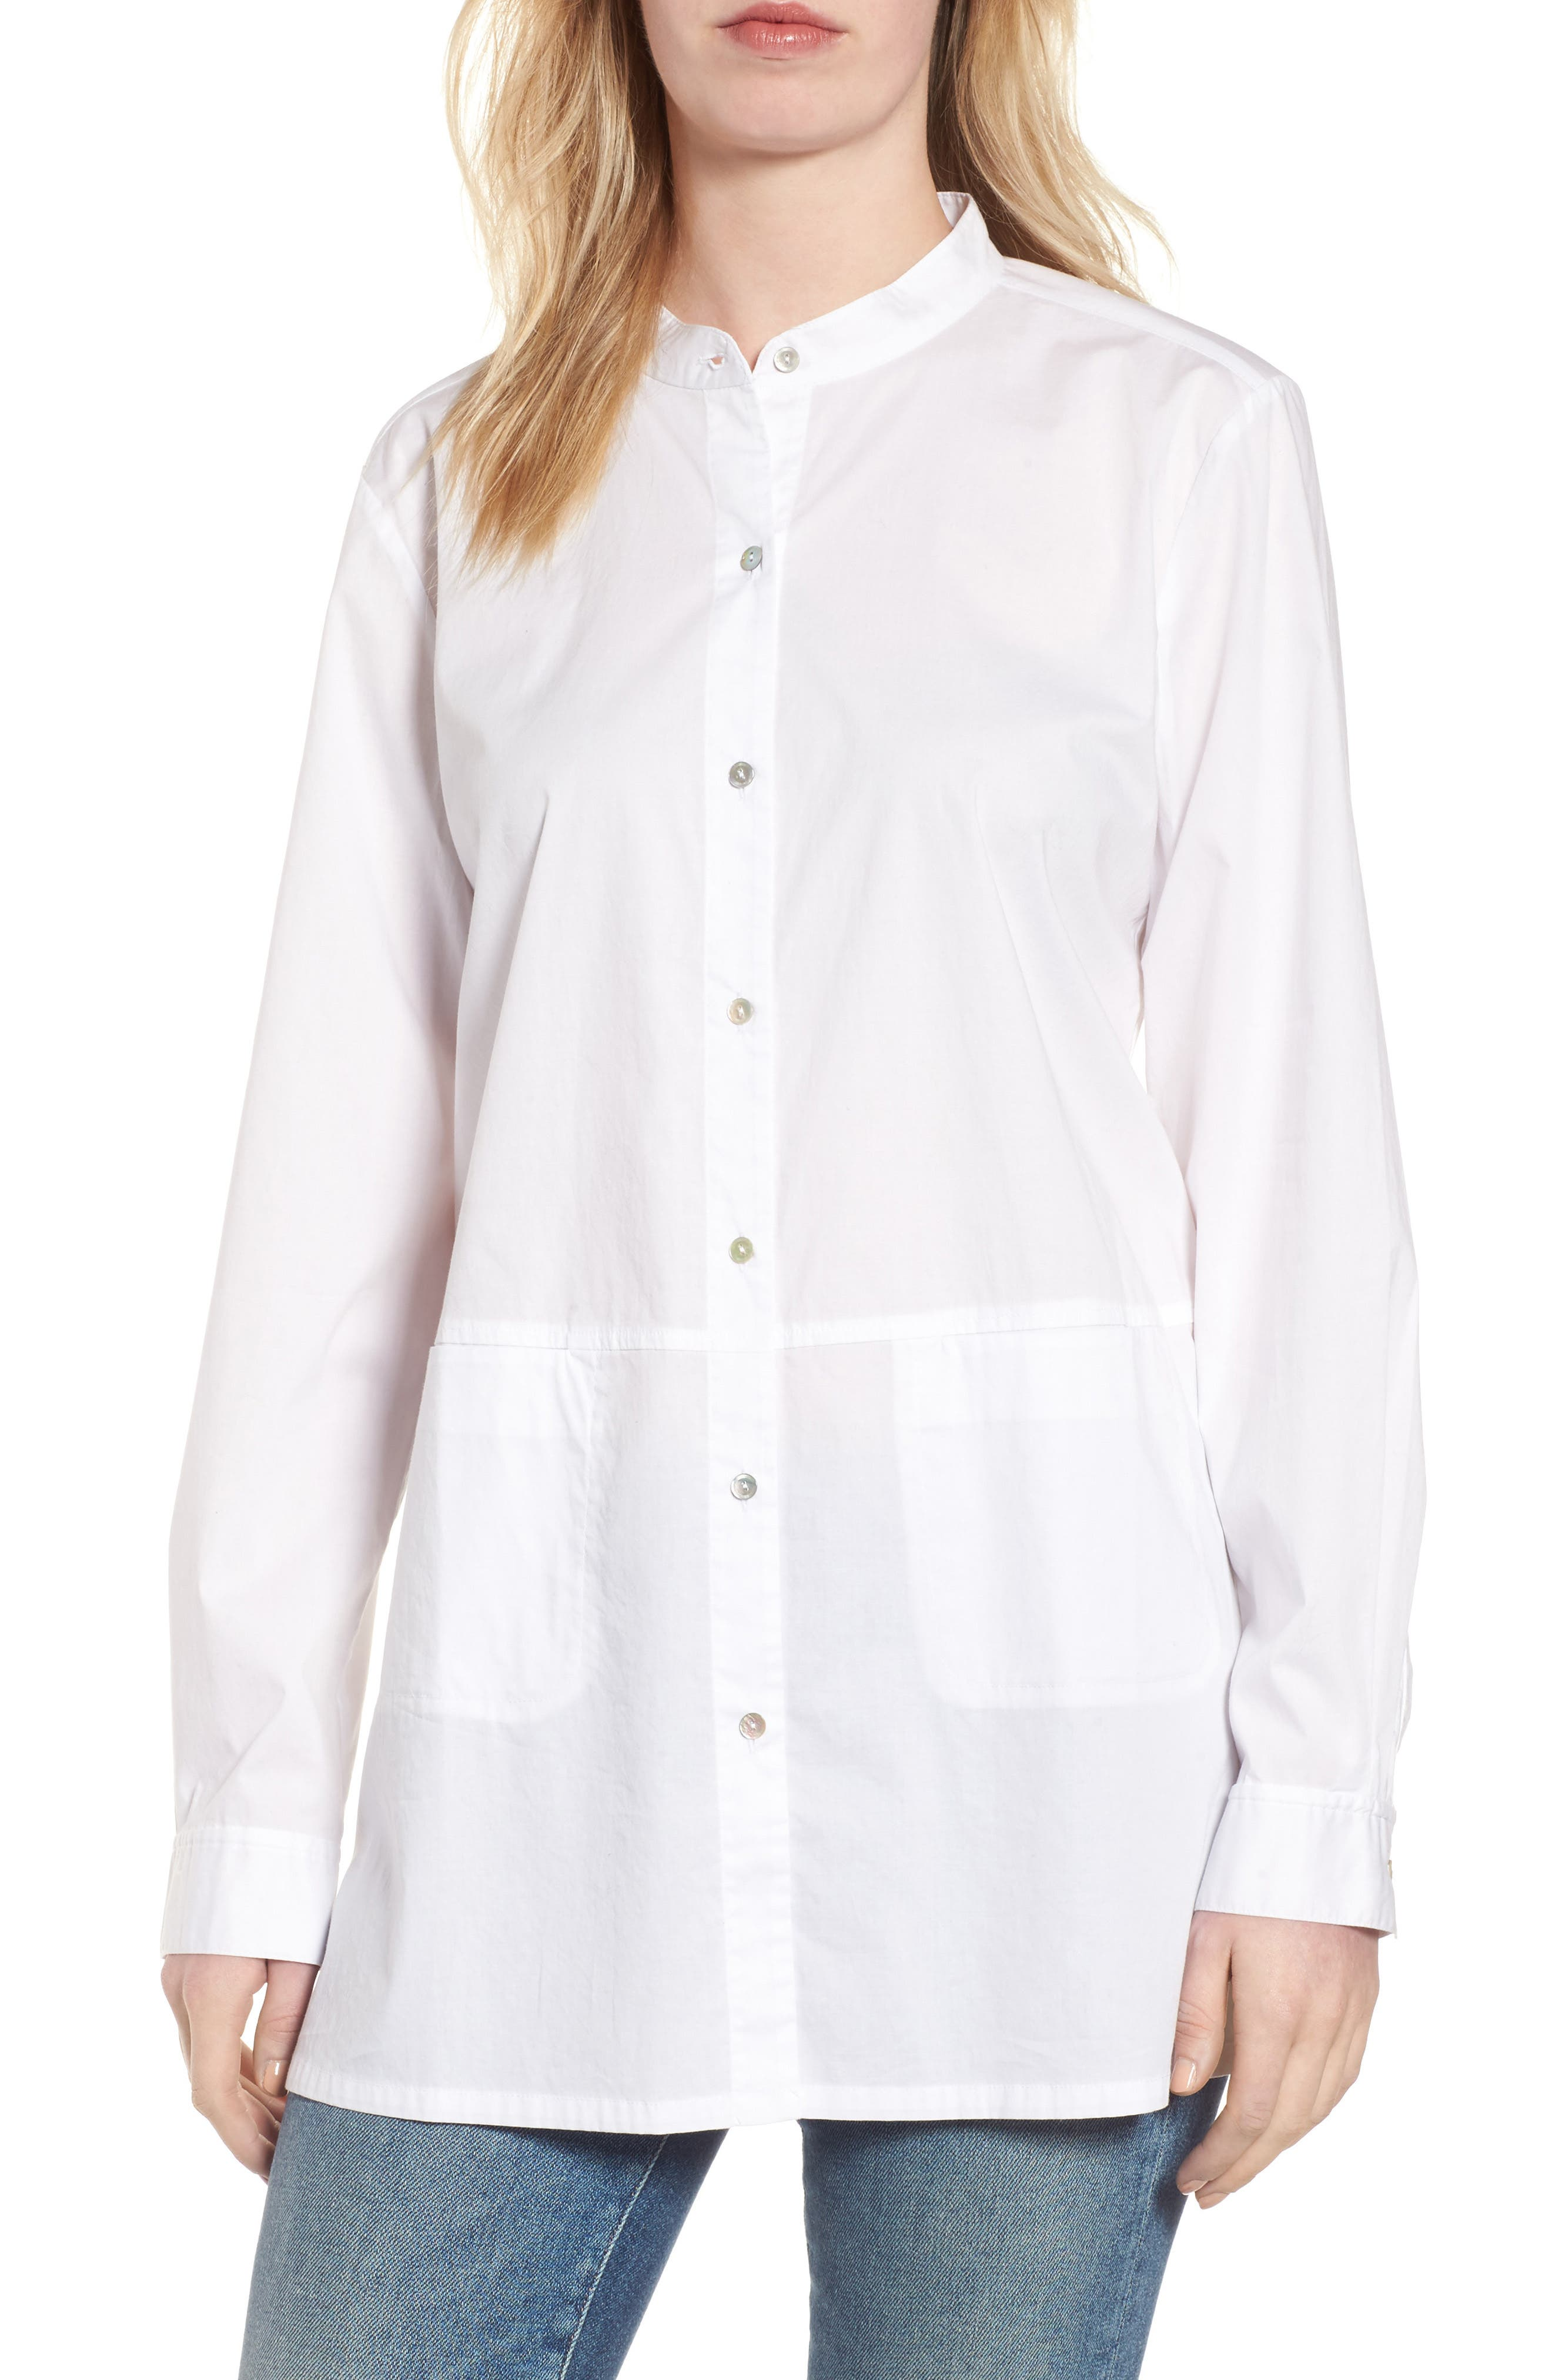 Alternate Image 1 Selected - Eileen Fisher Stretch Organic Cotton Shirt